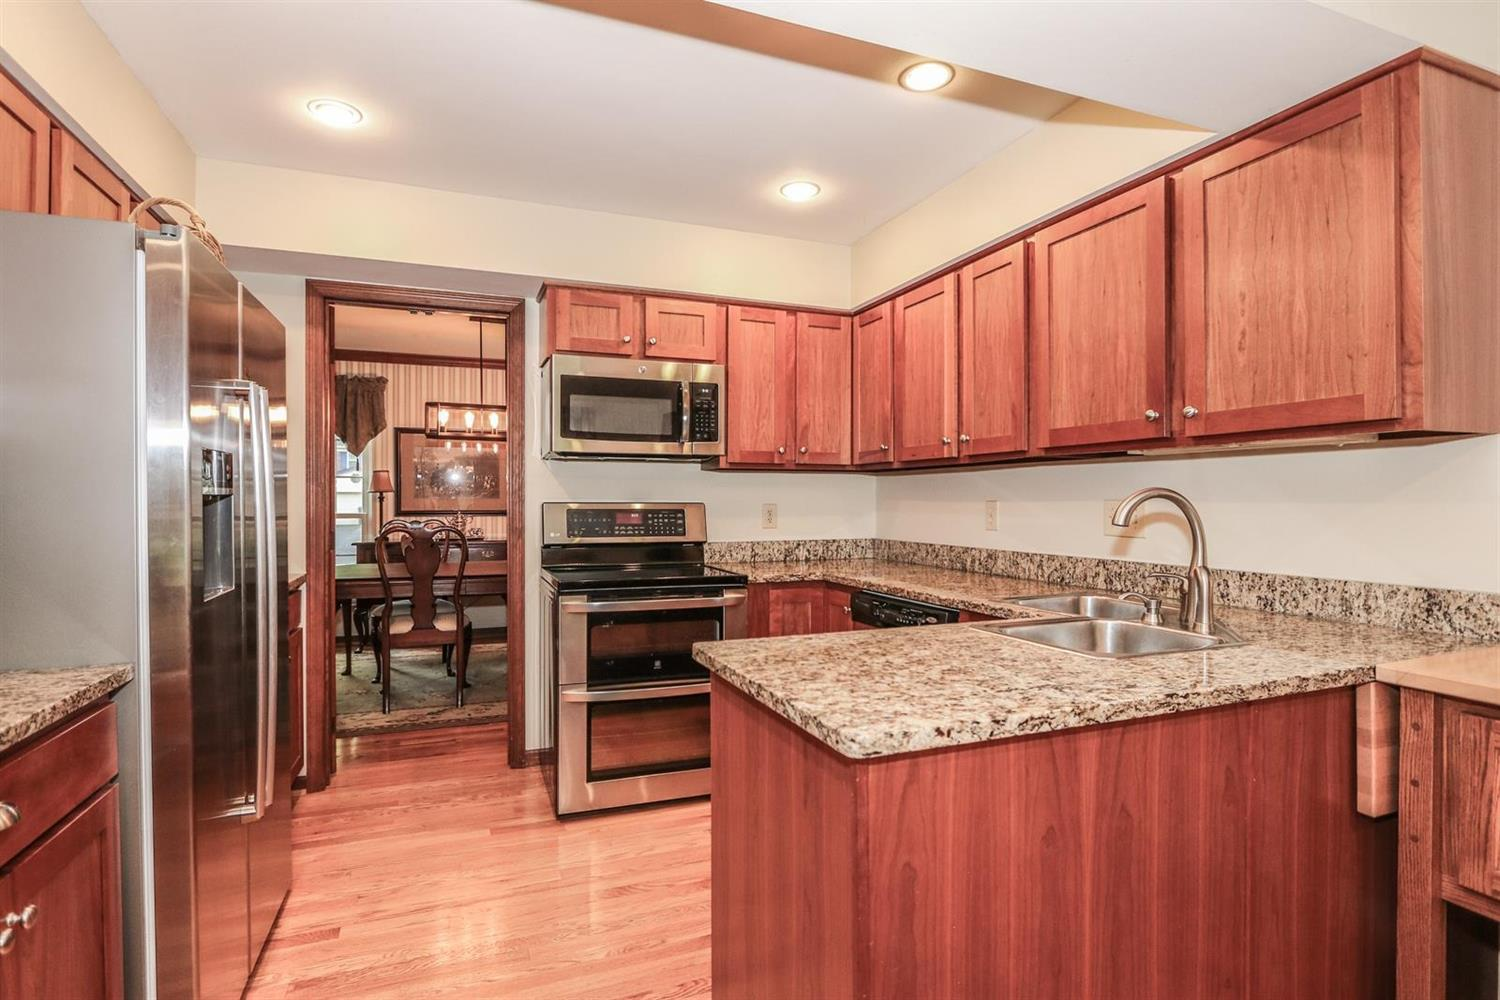 Property for sale at 11355 Marlette Drive, Sycamore Twp,  OH 45249